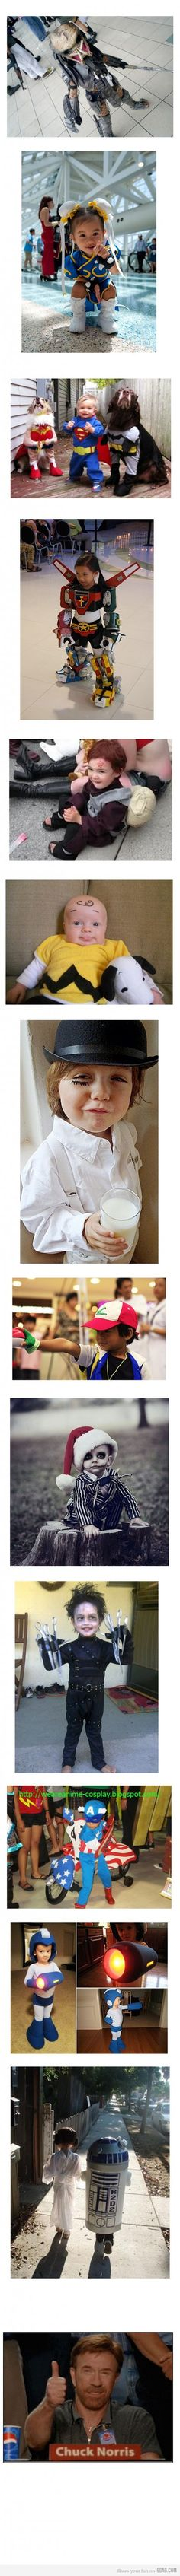 OMG TOO CUTE: Kids cosplay rulez